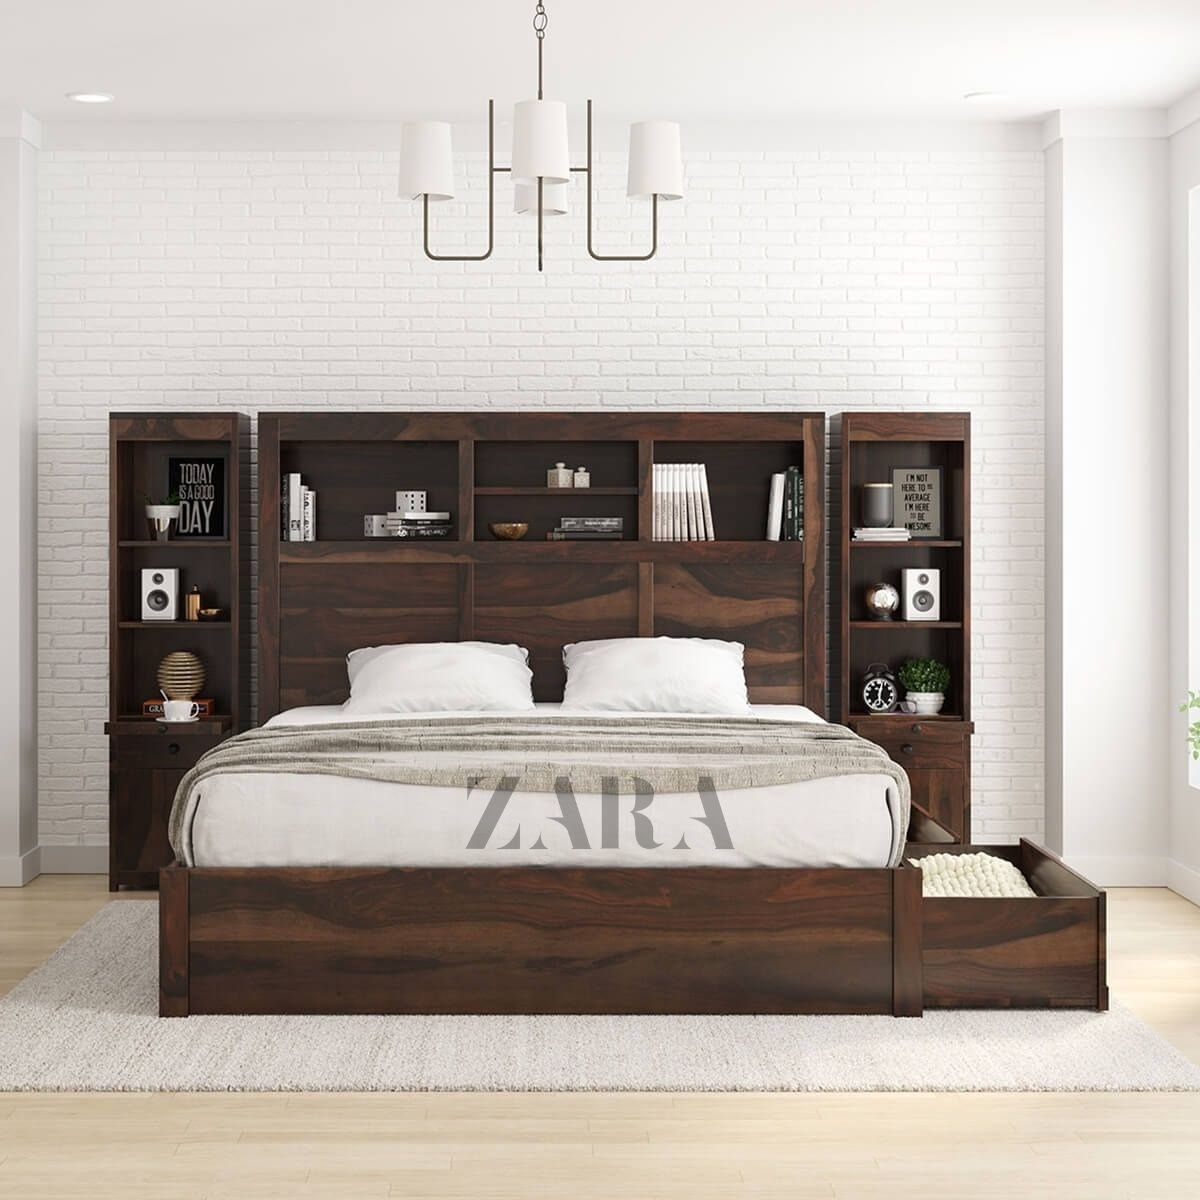 Brown Zara Solid Wood Storage Platform Bed With Bookcase Headboard For Everywhere Size King Queen Rs 74999 Piece Id 22404089955